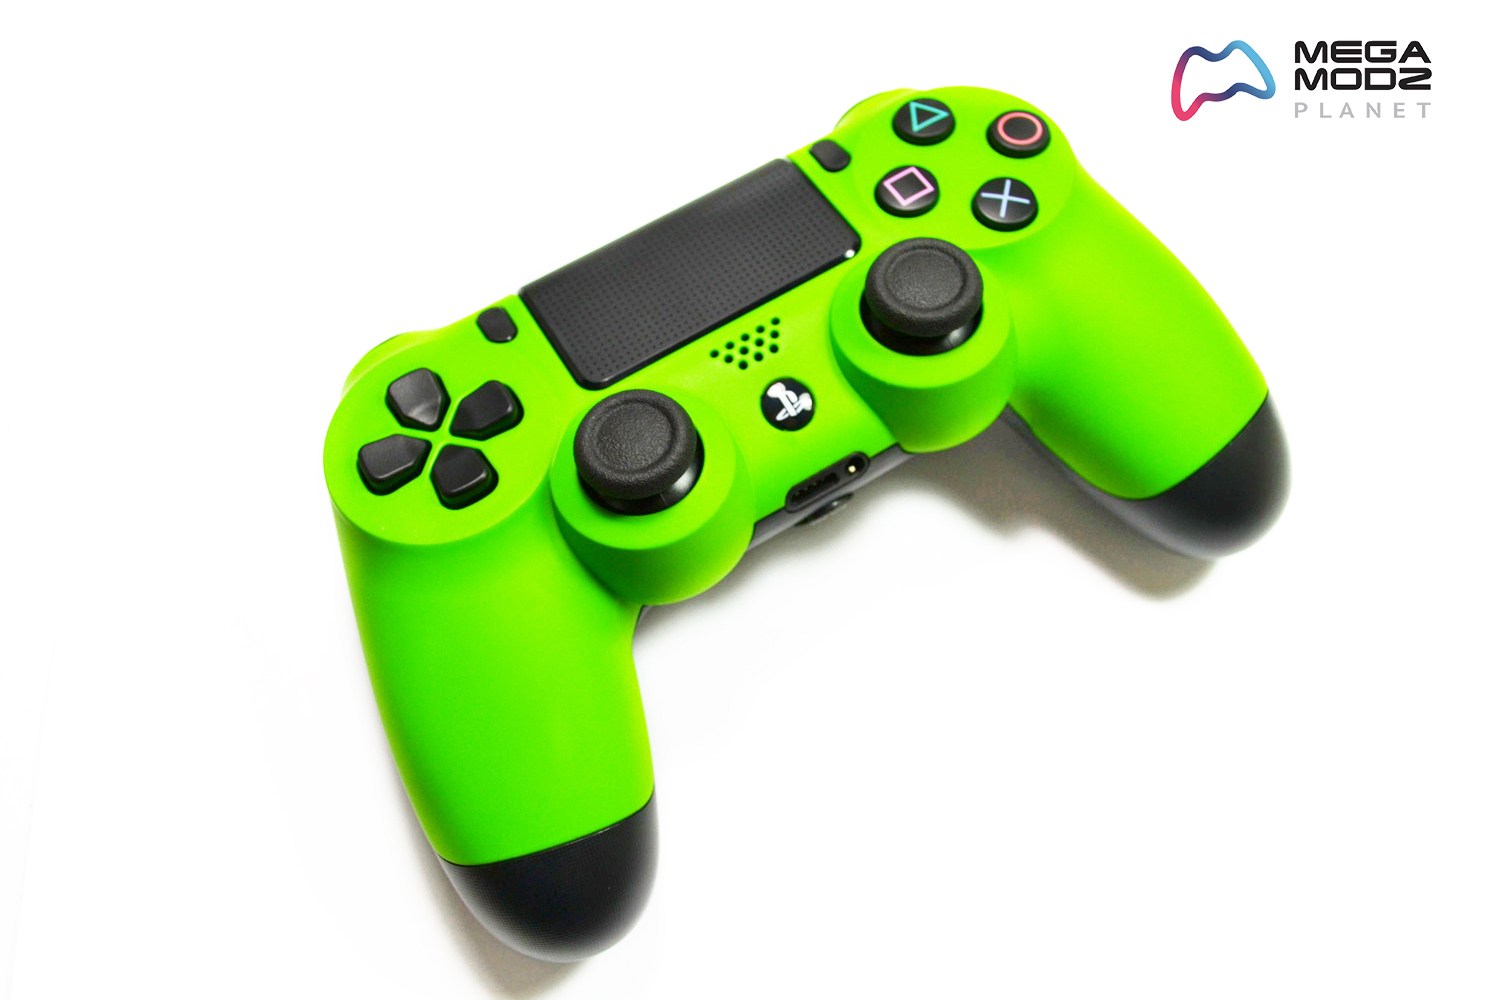 xbox 360 controller green | Search Results | Dunia Photo